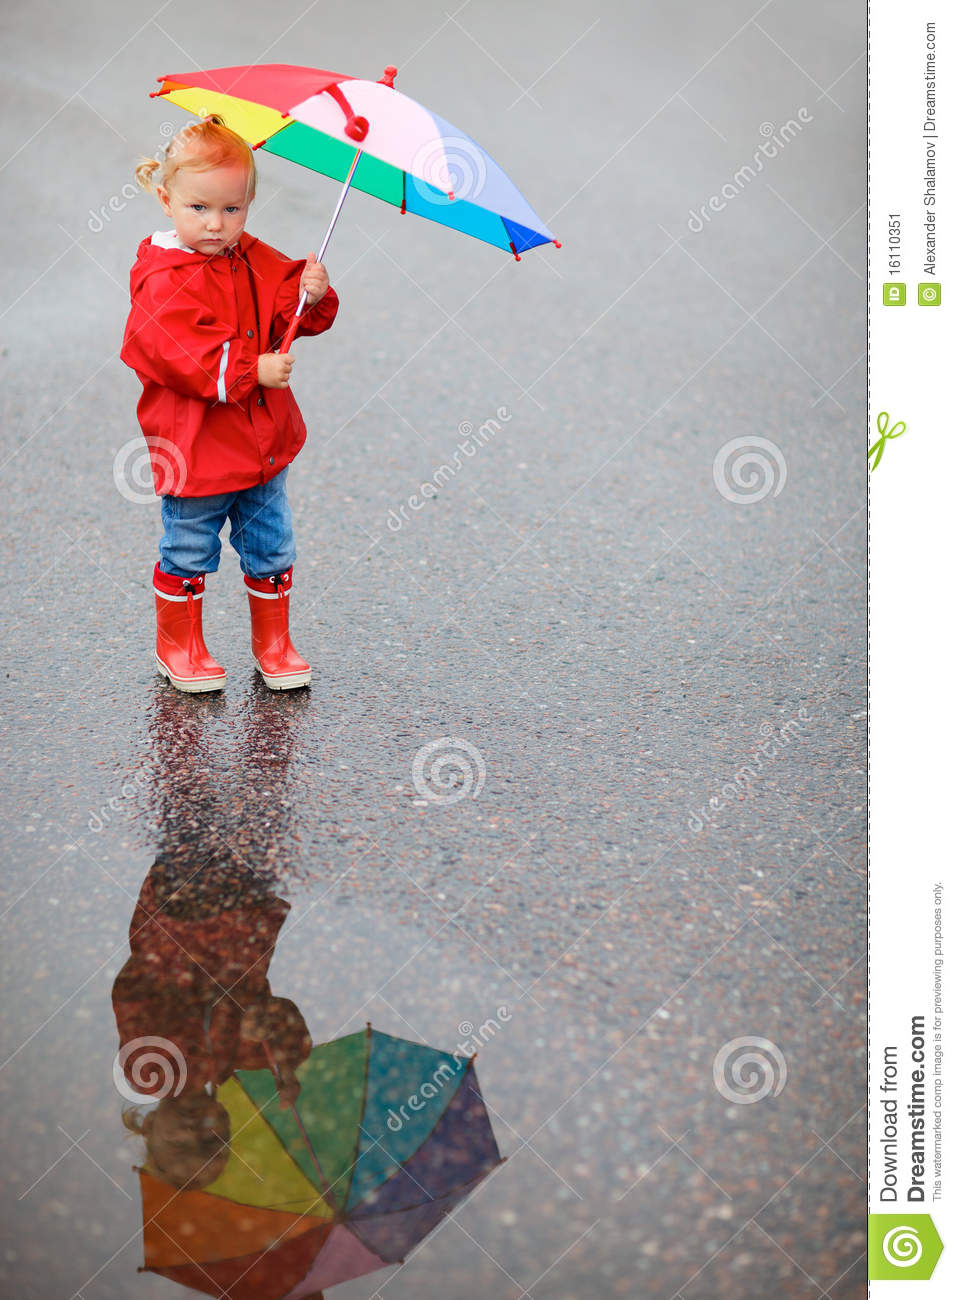 toddler girl with colorful umbrella on rainy day stock